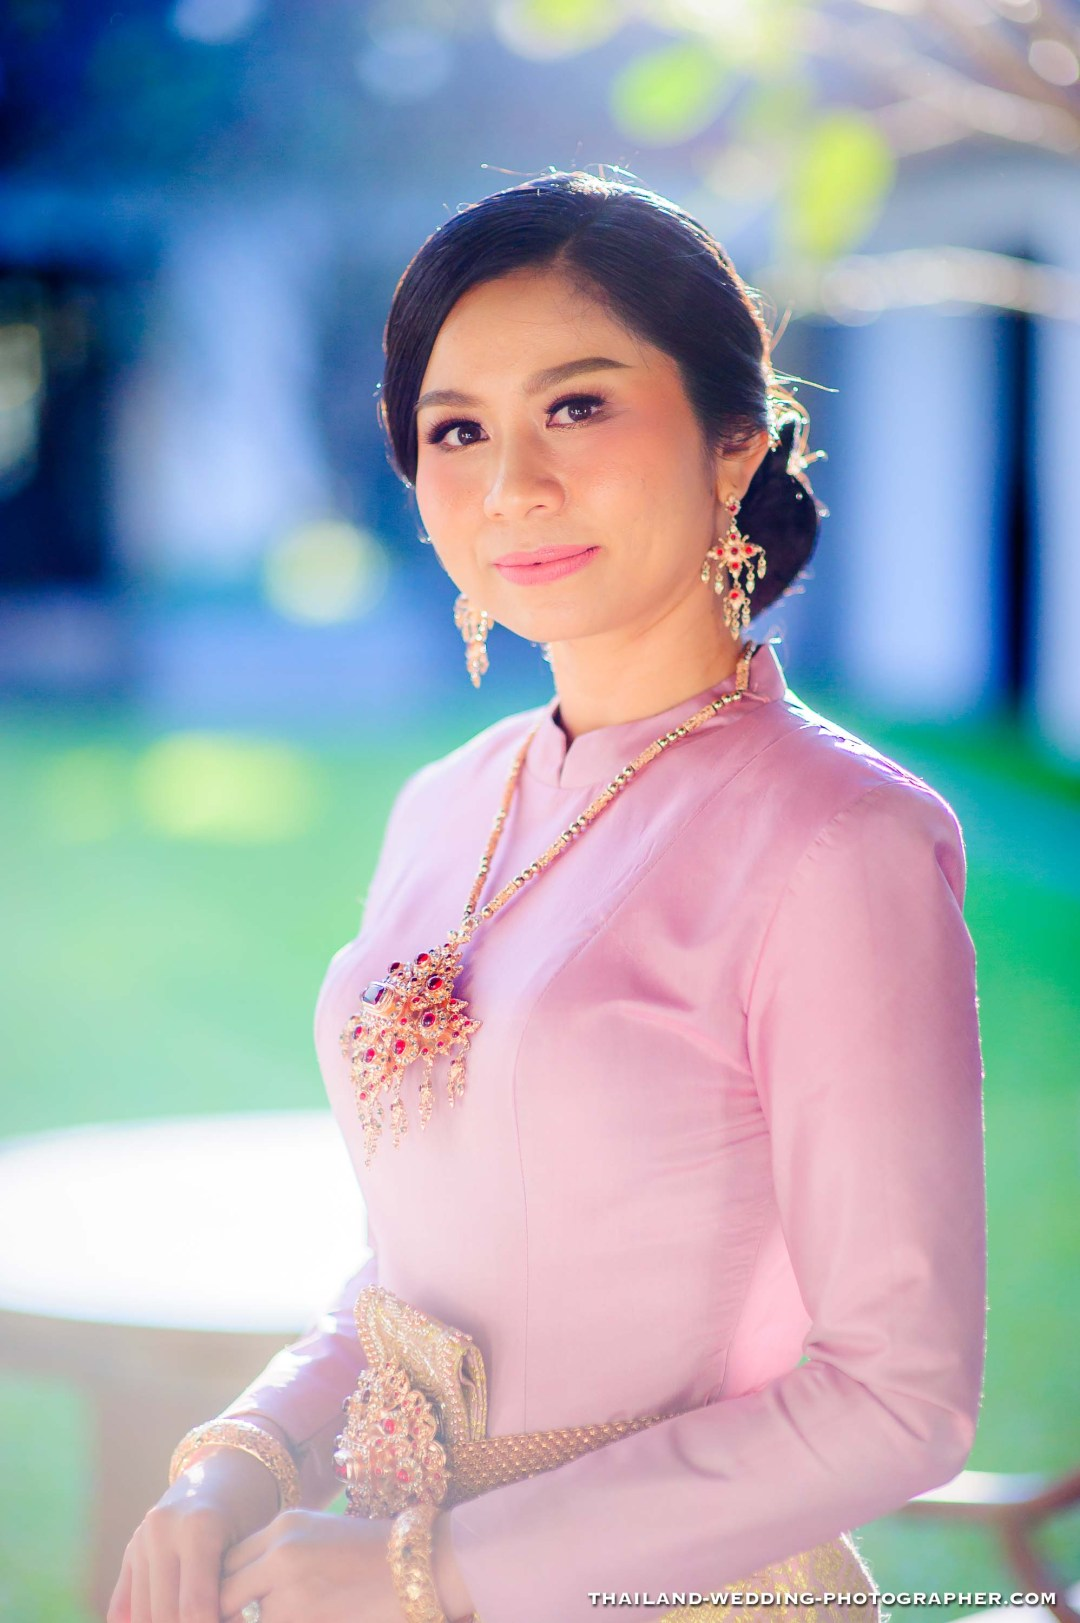 Thailand AVANI Khon Kaen Hotel & Convention Centre Wedding